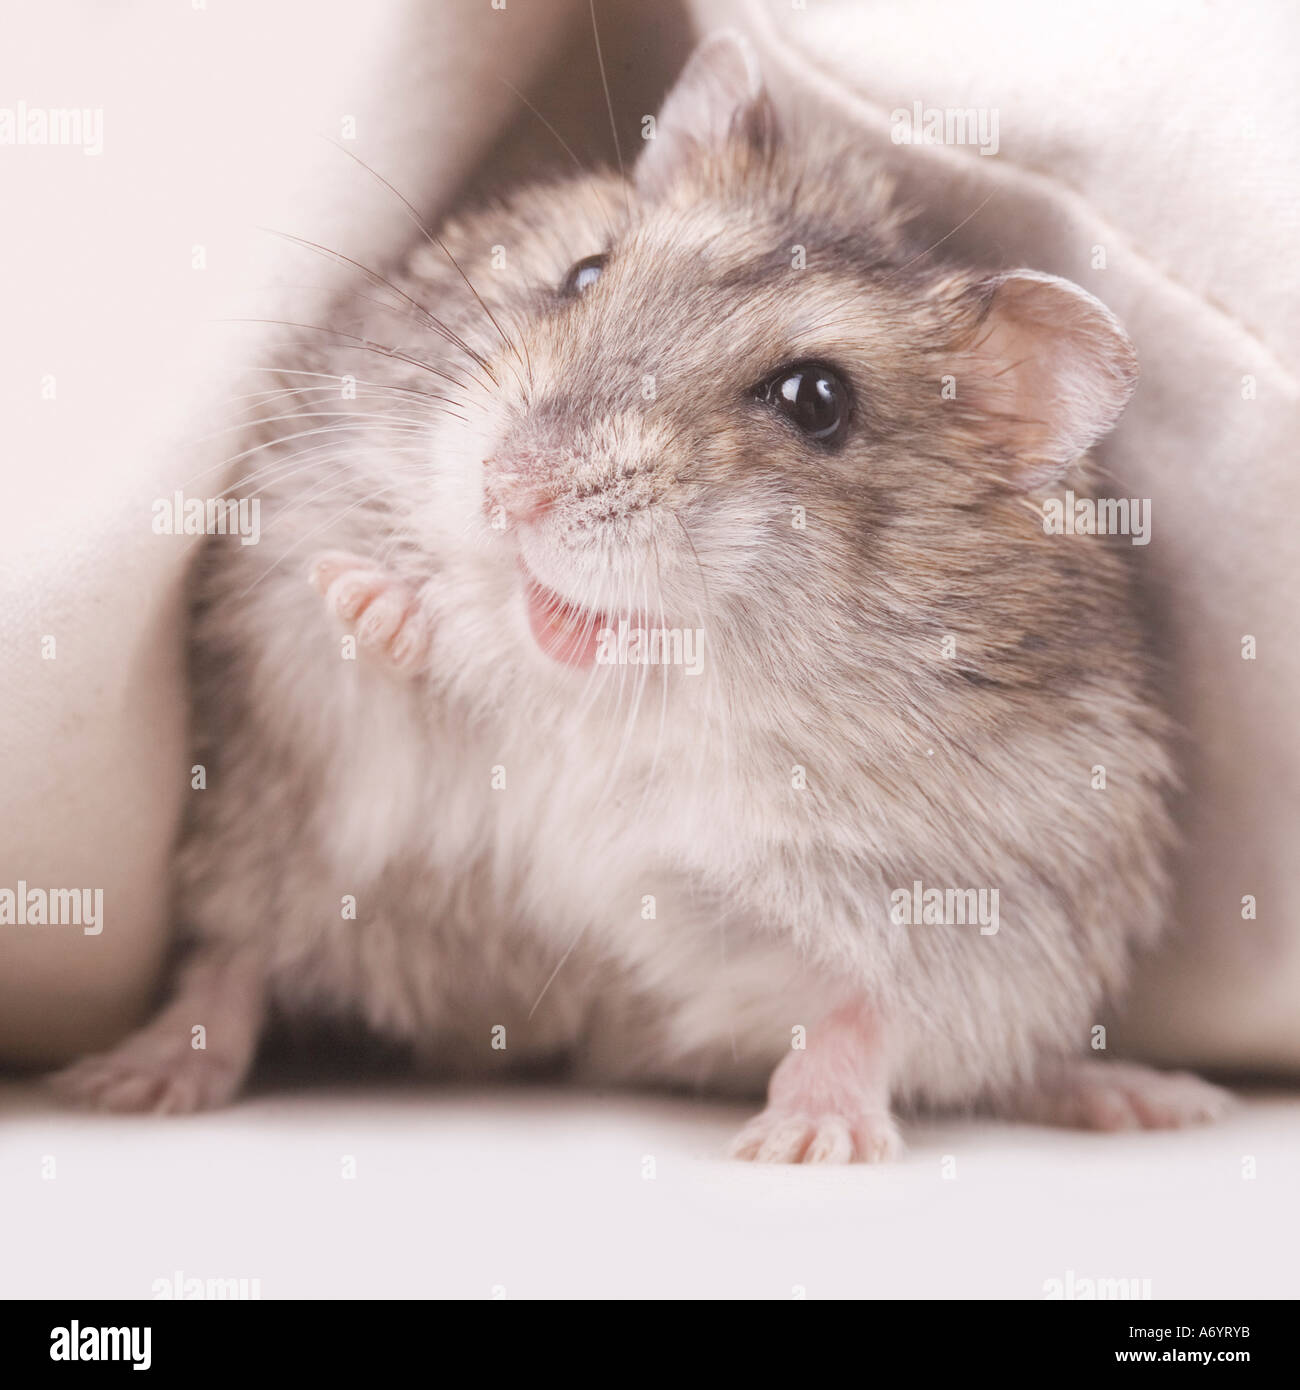 Cheeky hamster - Stock Image